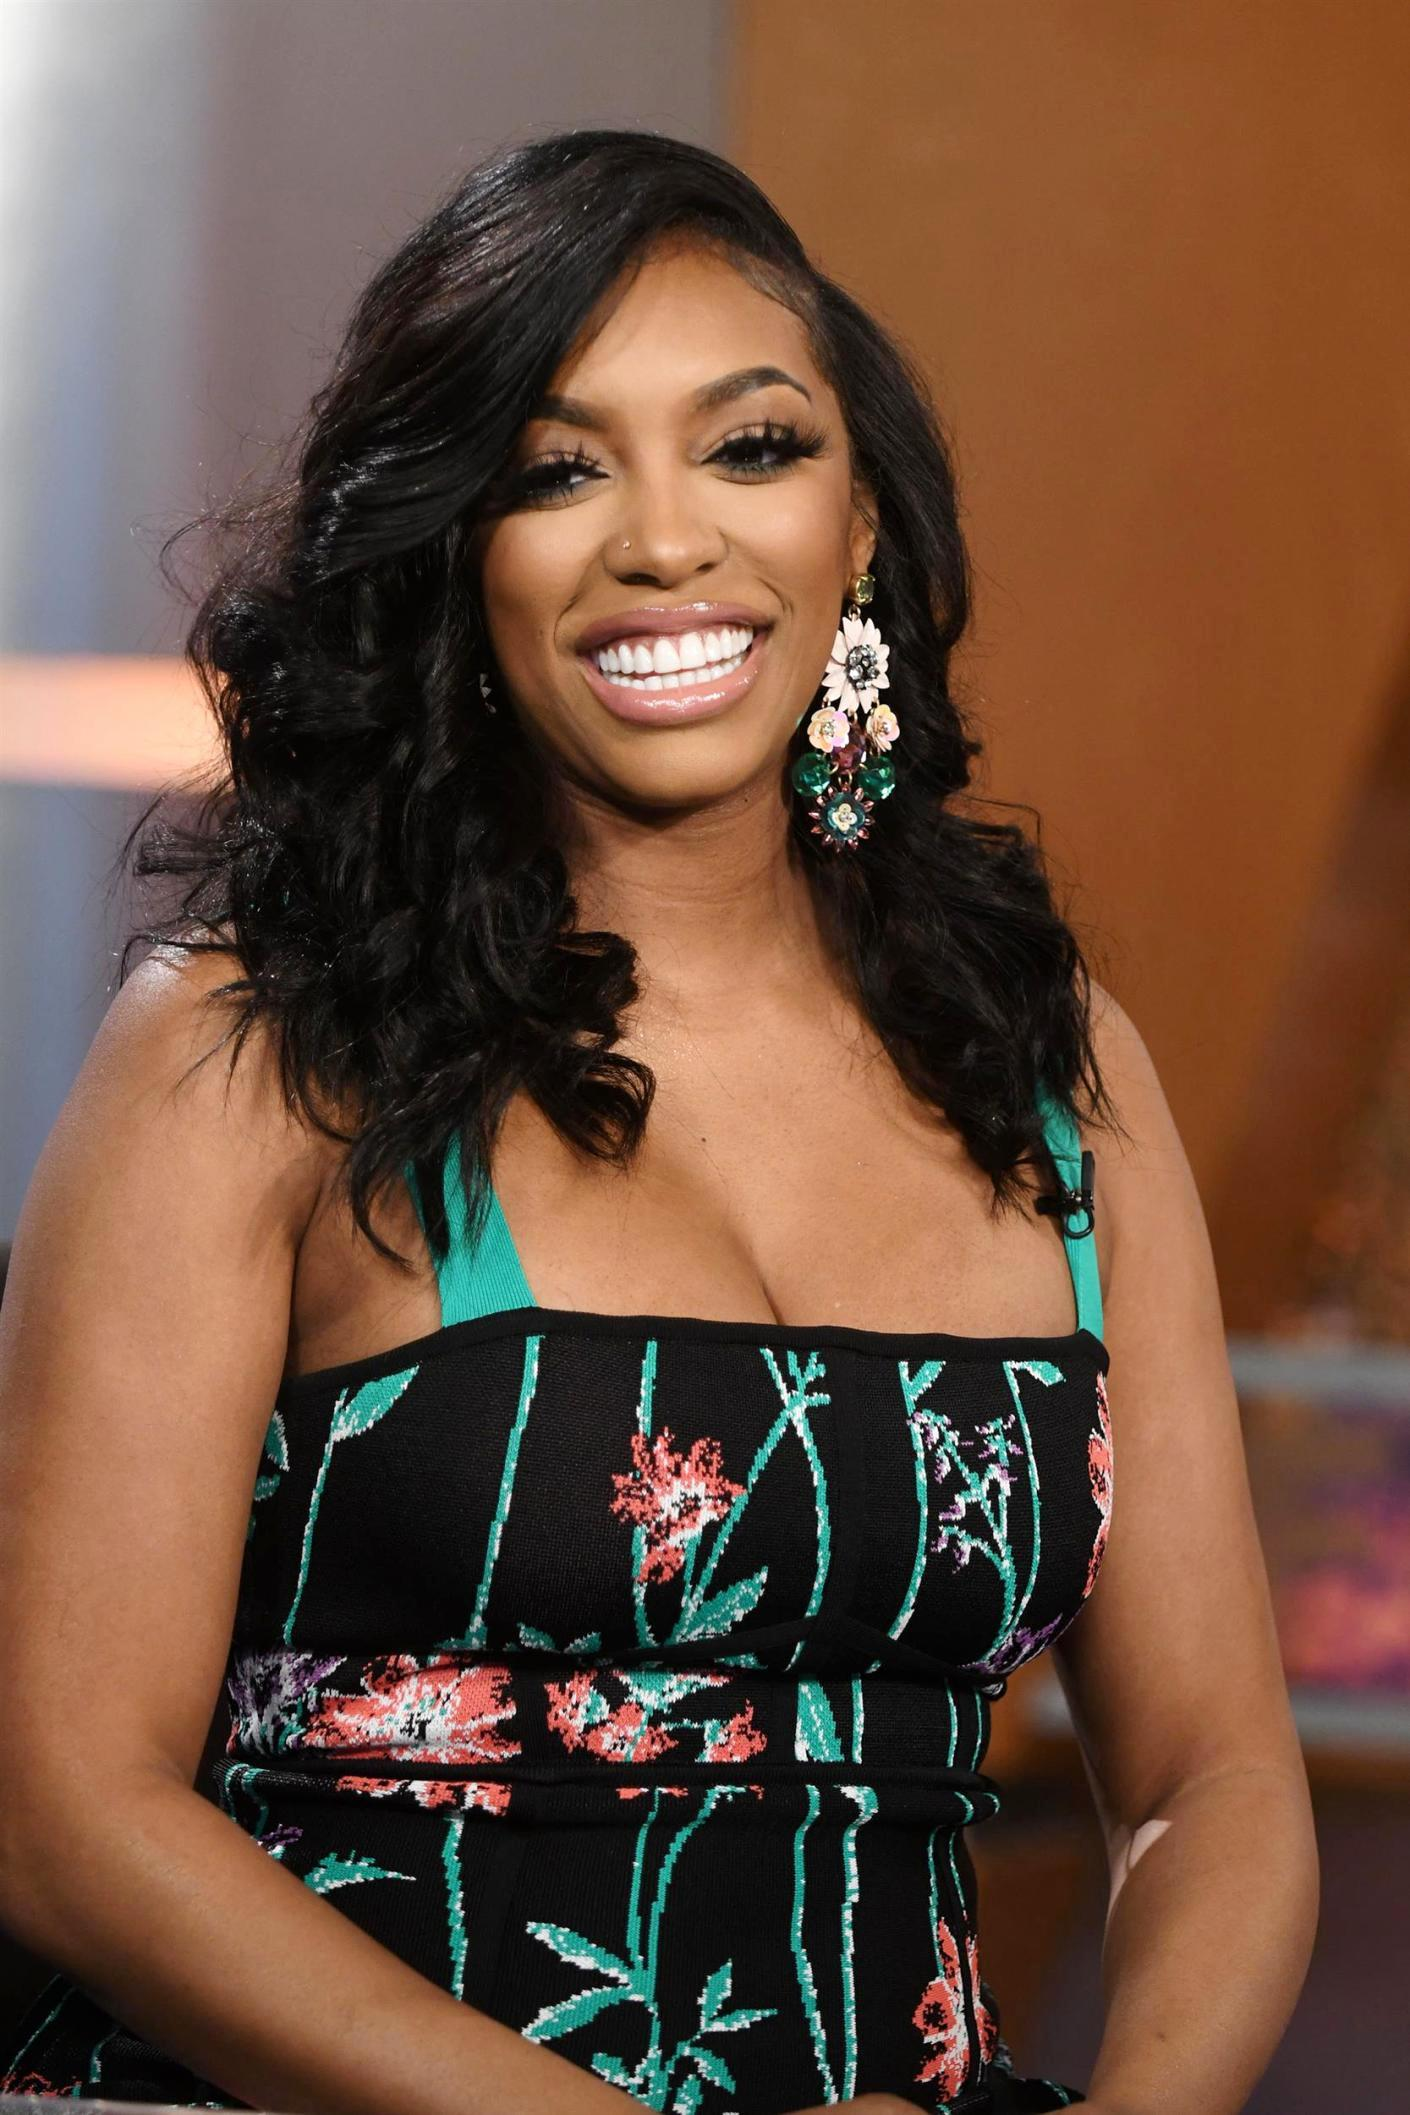 """Porsha Williams Announces Exit From RHOA After 10 """"Life-Changing"""" Years But Promises She'll Be Back on TV """"Soon"""" as Andy Cohen Deems Exit a """"Pause"""""""